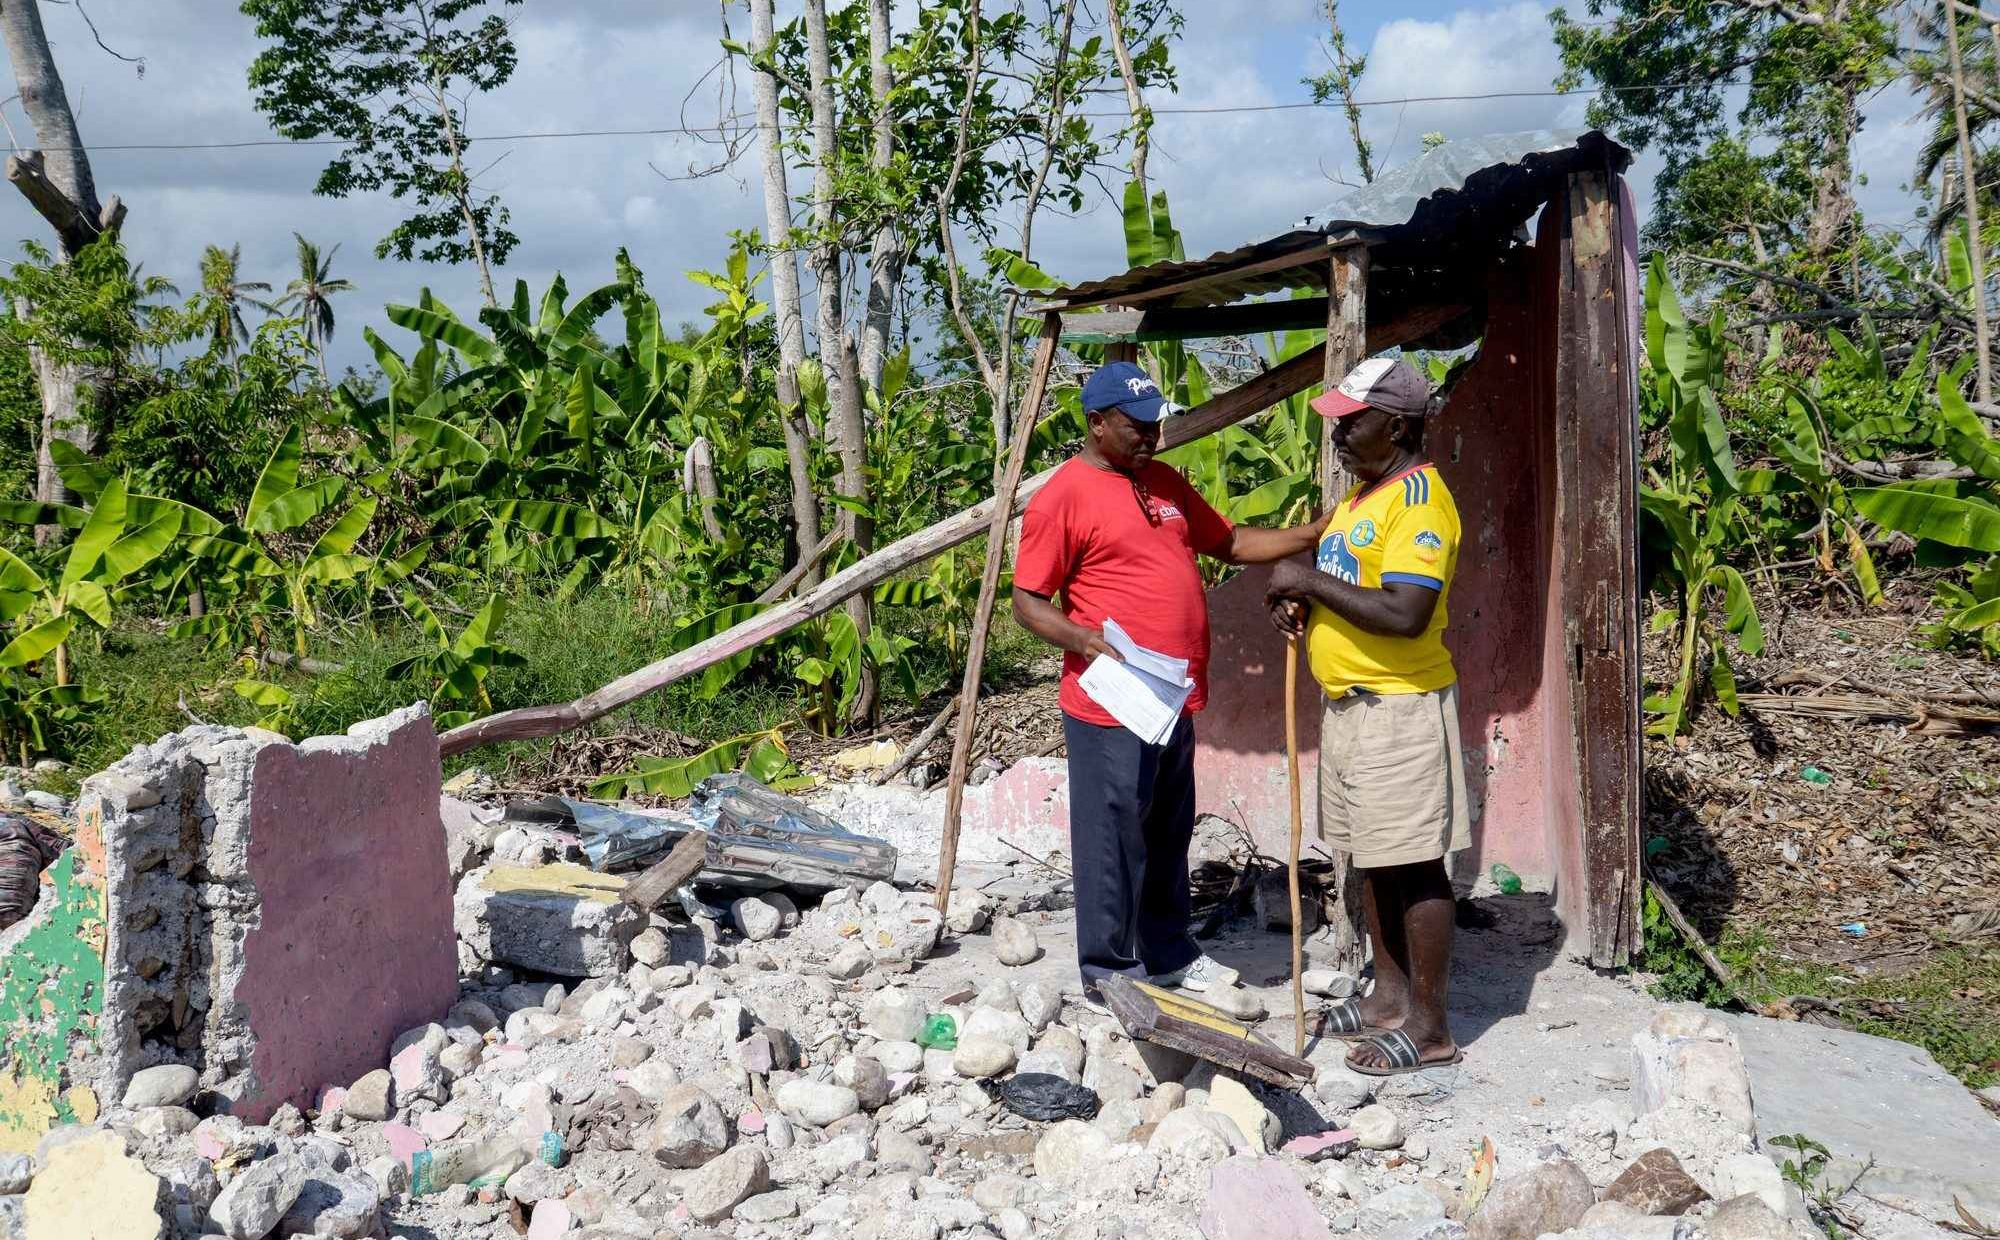 Homer revisits the ruins of his home, destroyed in Hurricane Matthew in October 2016. Homer is blind and was receiving support from CBM to rebuild his life after losing his home and all his belongings.